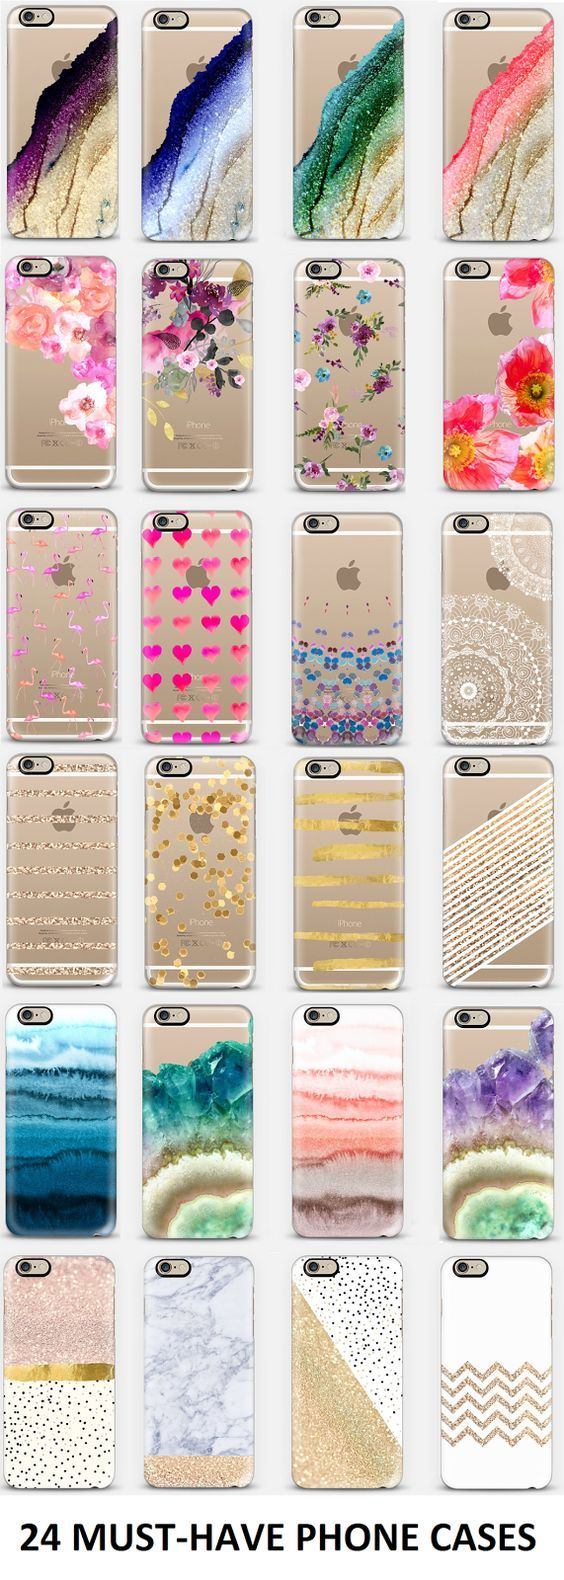 24 must-have phone cases: